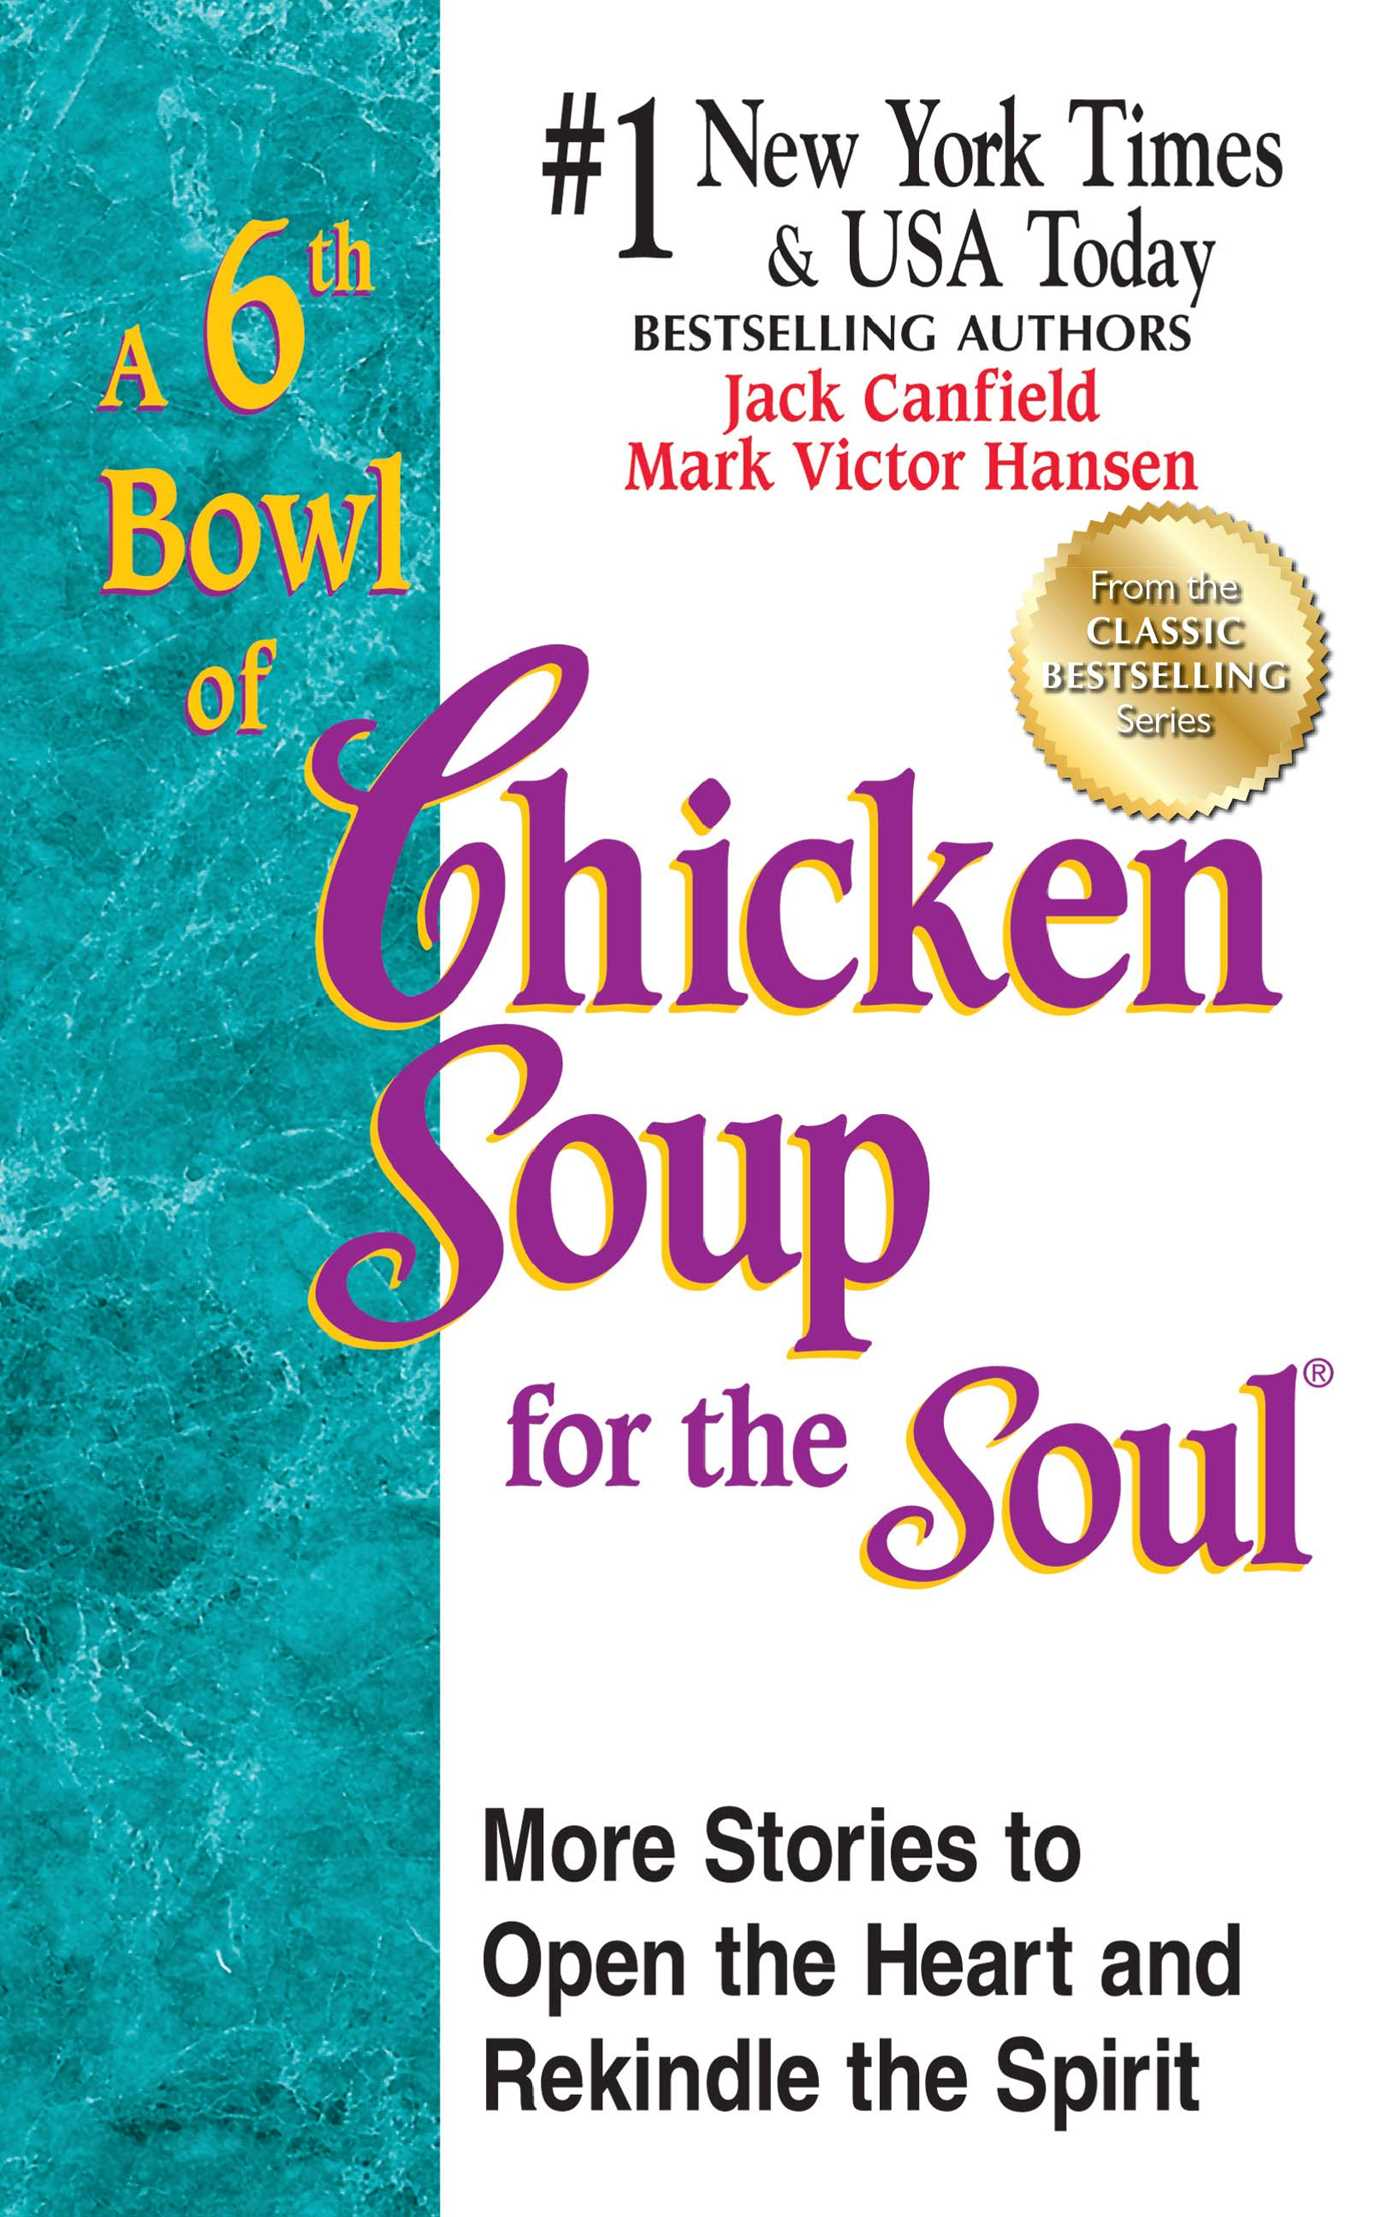 A 6th bowl of chicken soup for the soul 9781623610739 hr